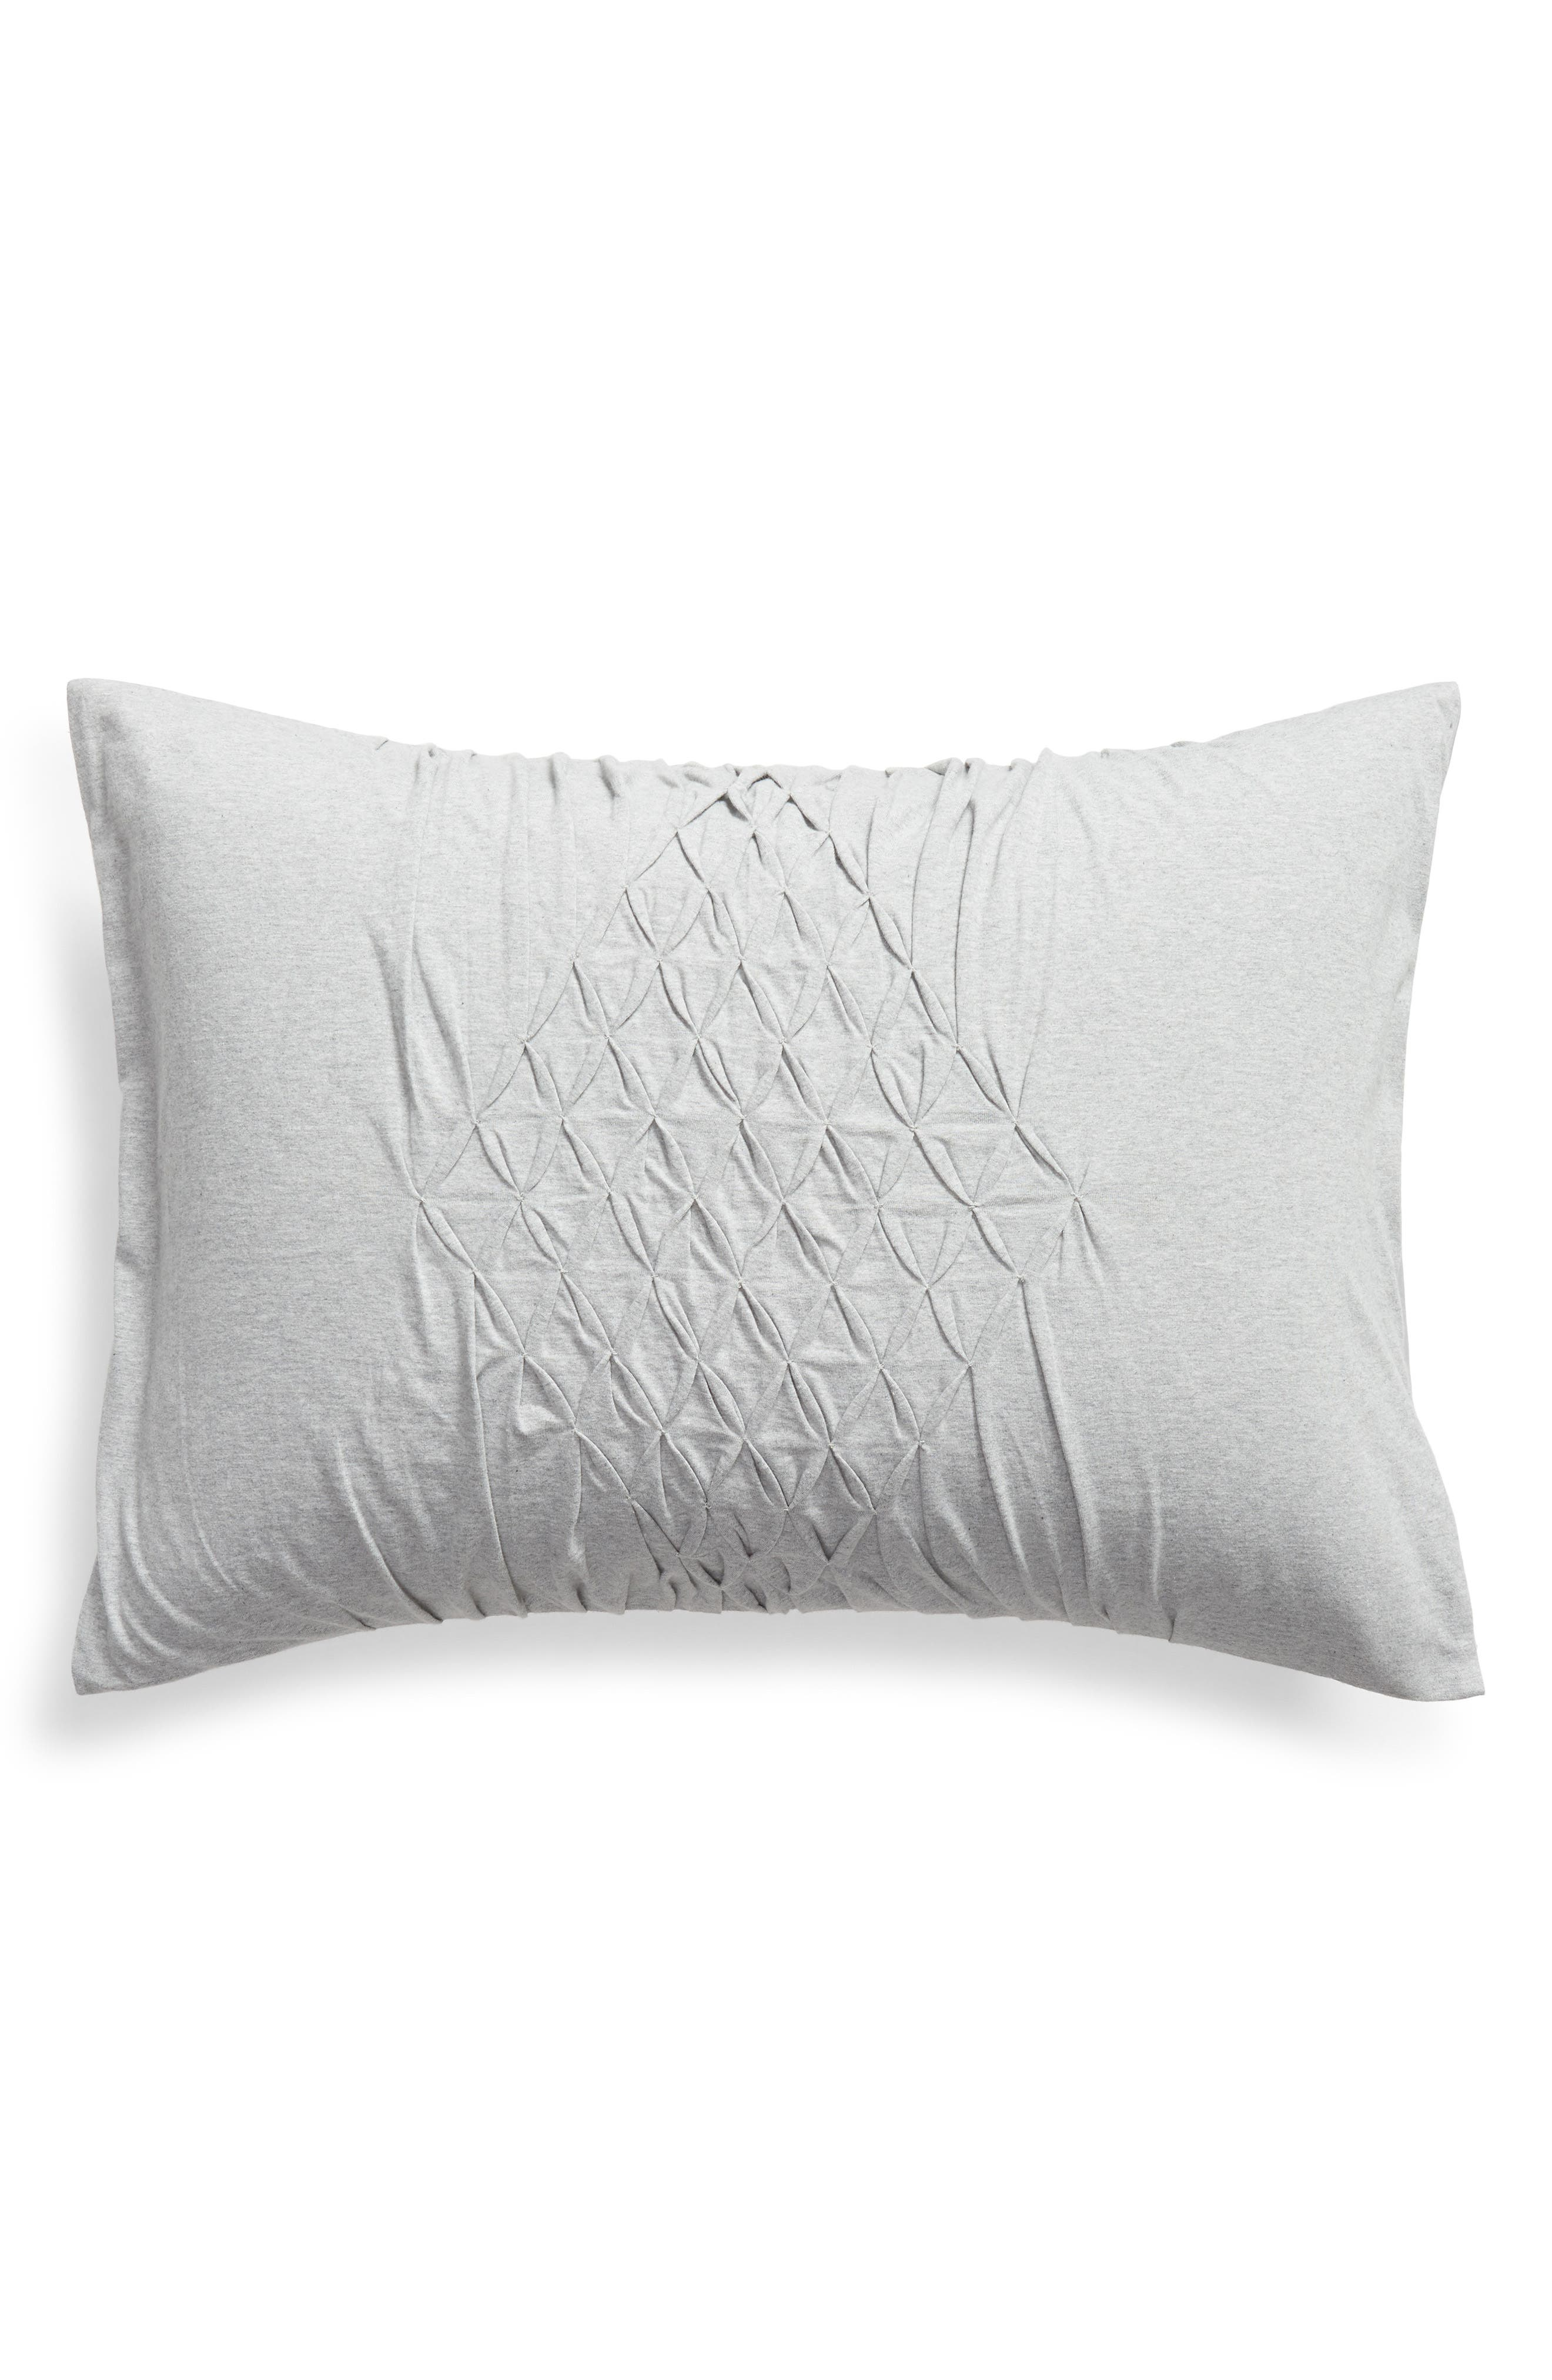 New Pillow Shams All Home: Sale | Nordstrom OV07